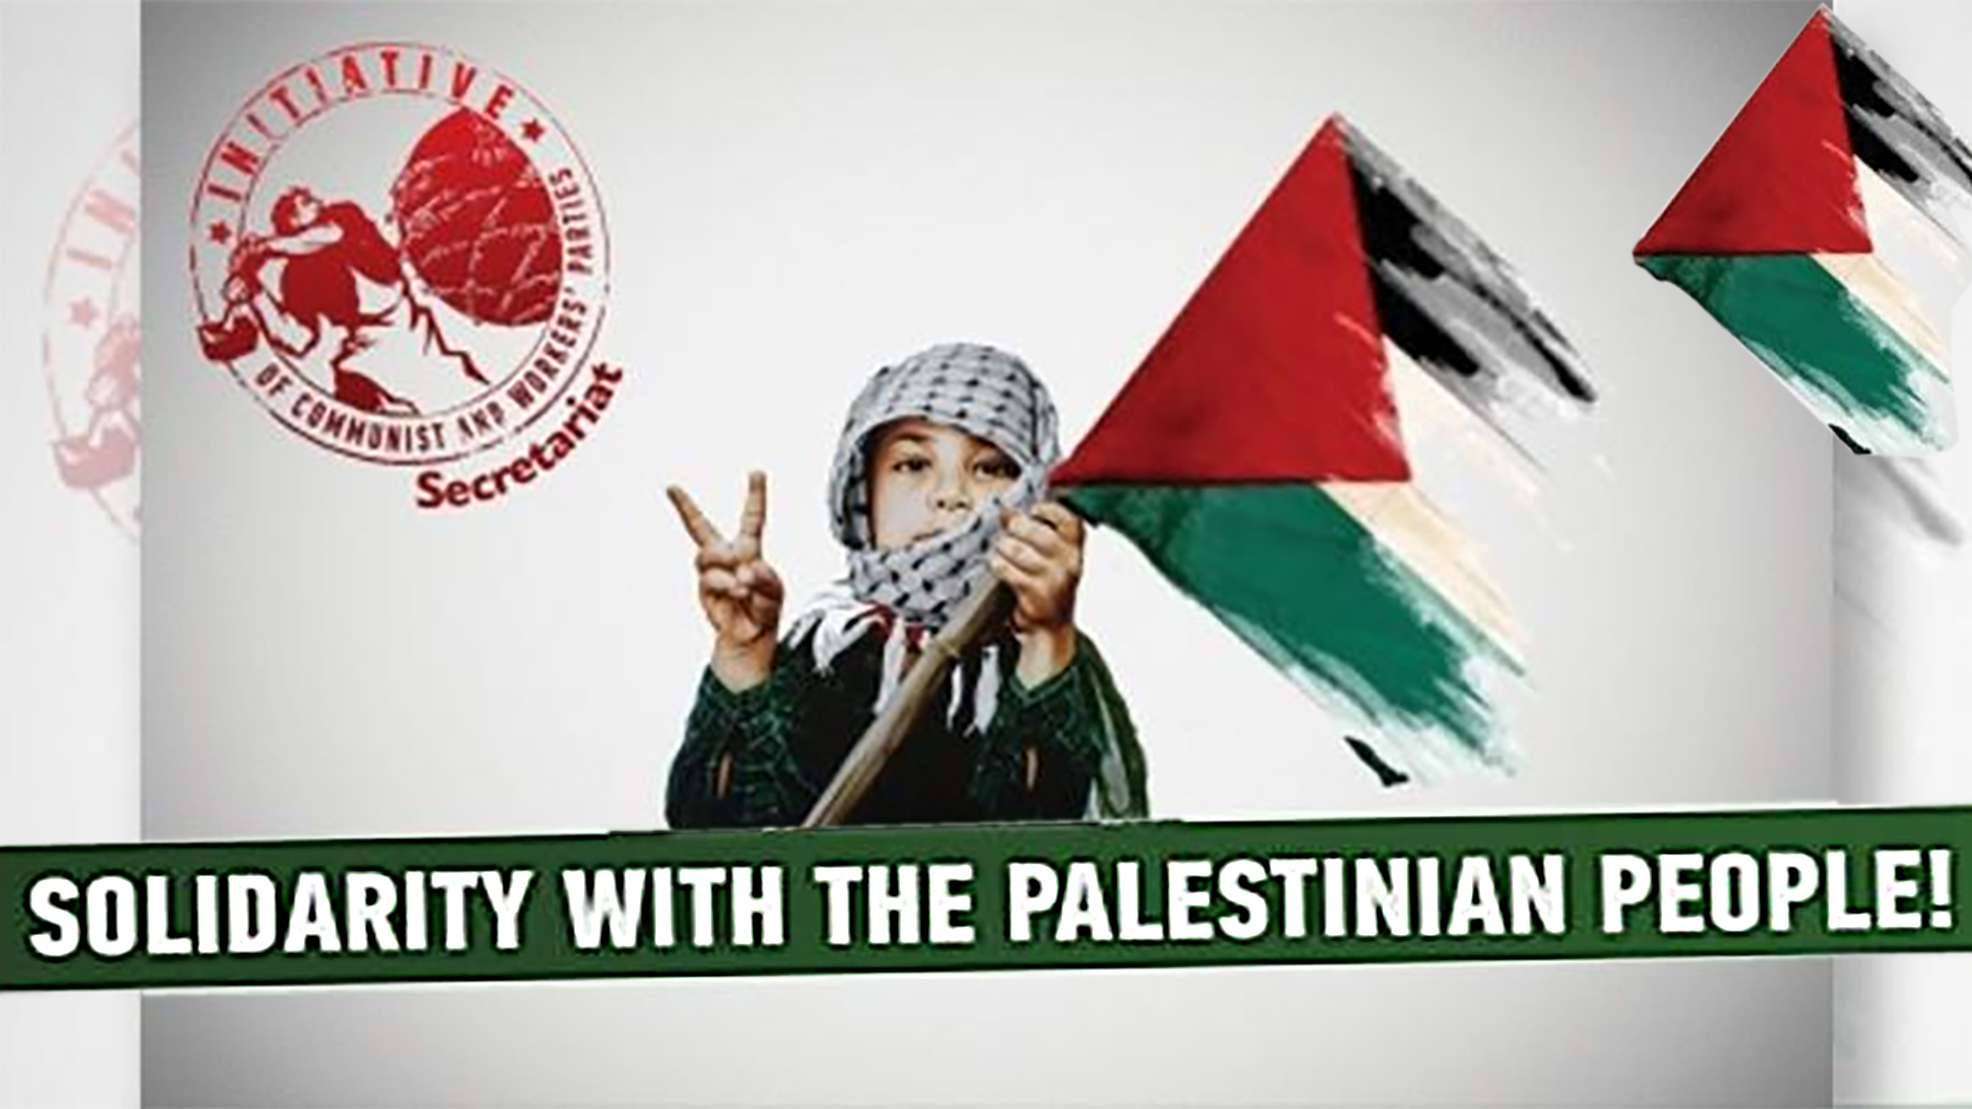 Secretariat of the European Communist Initiative Solidarity with the Palestinian people